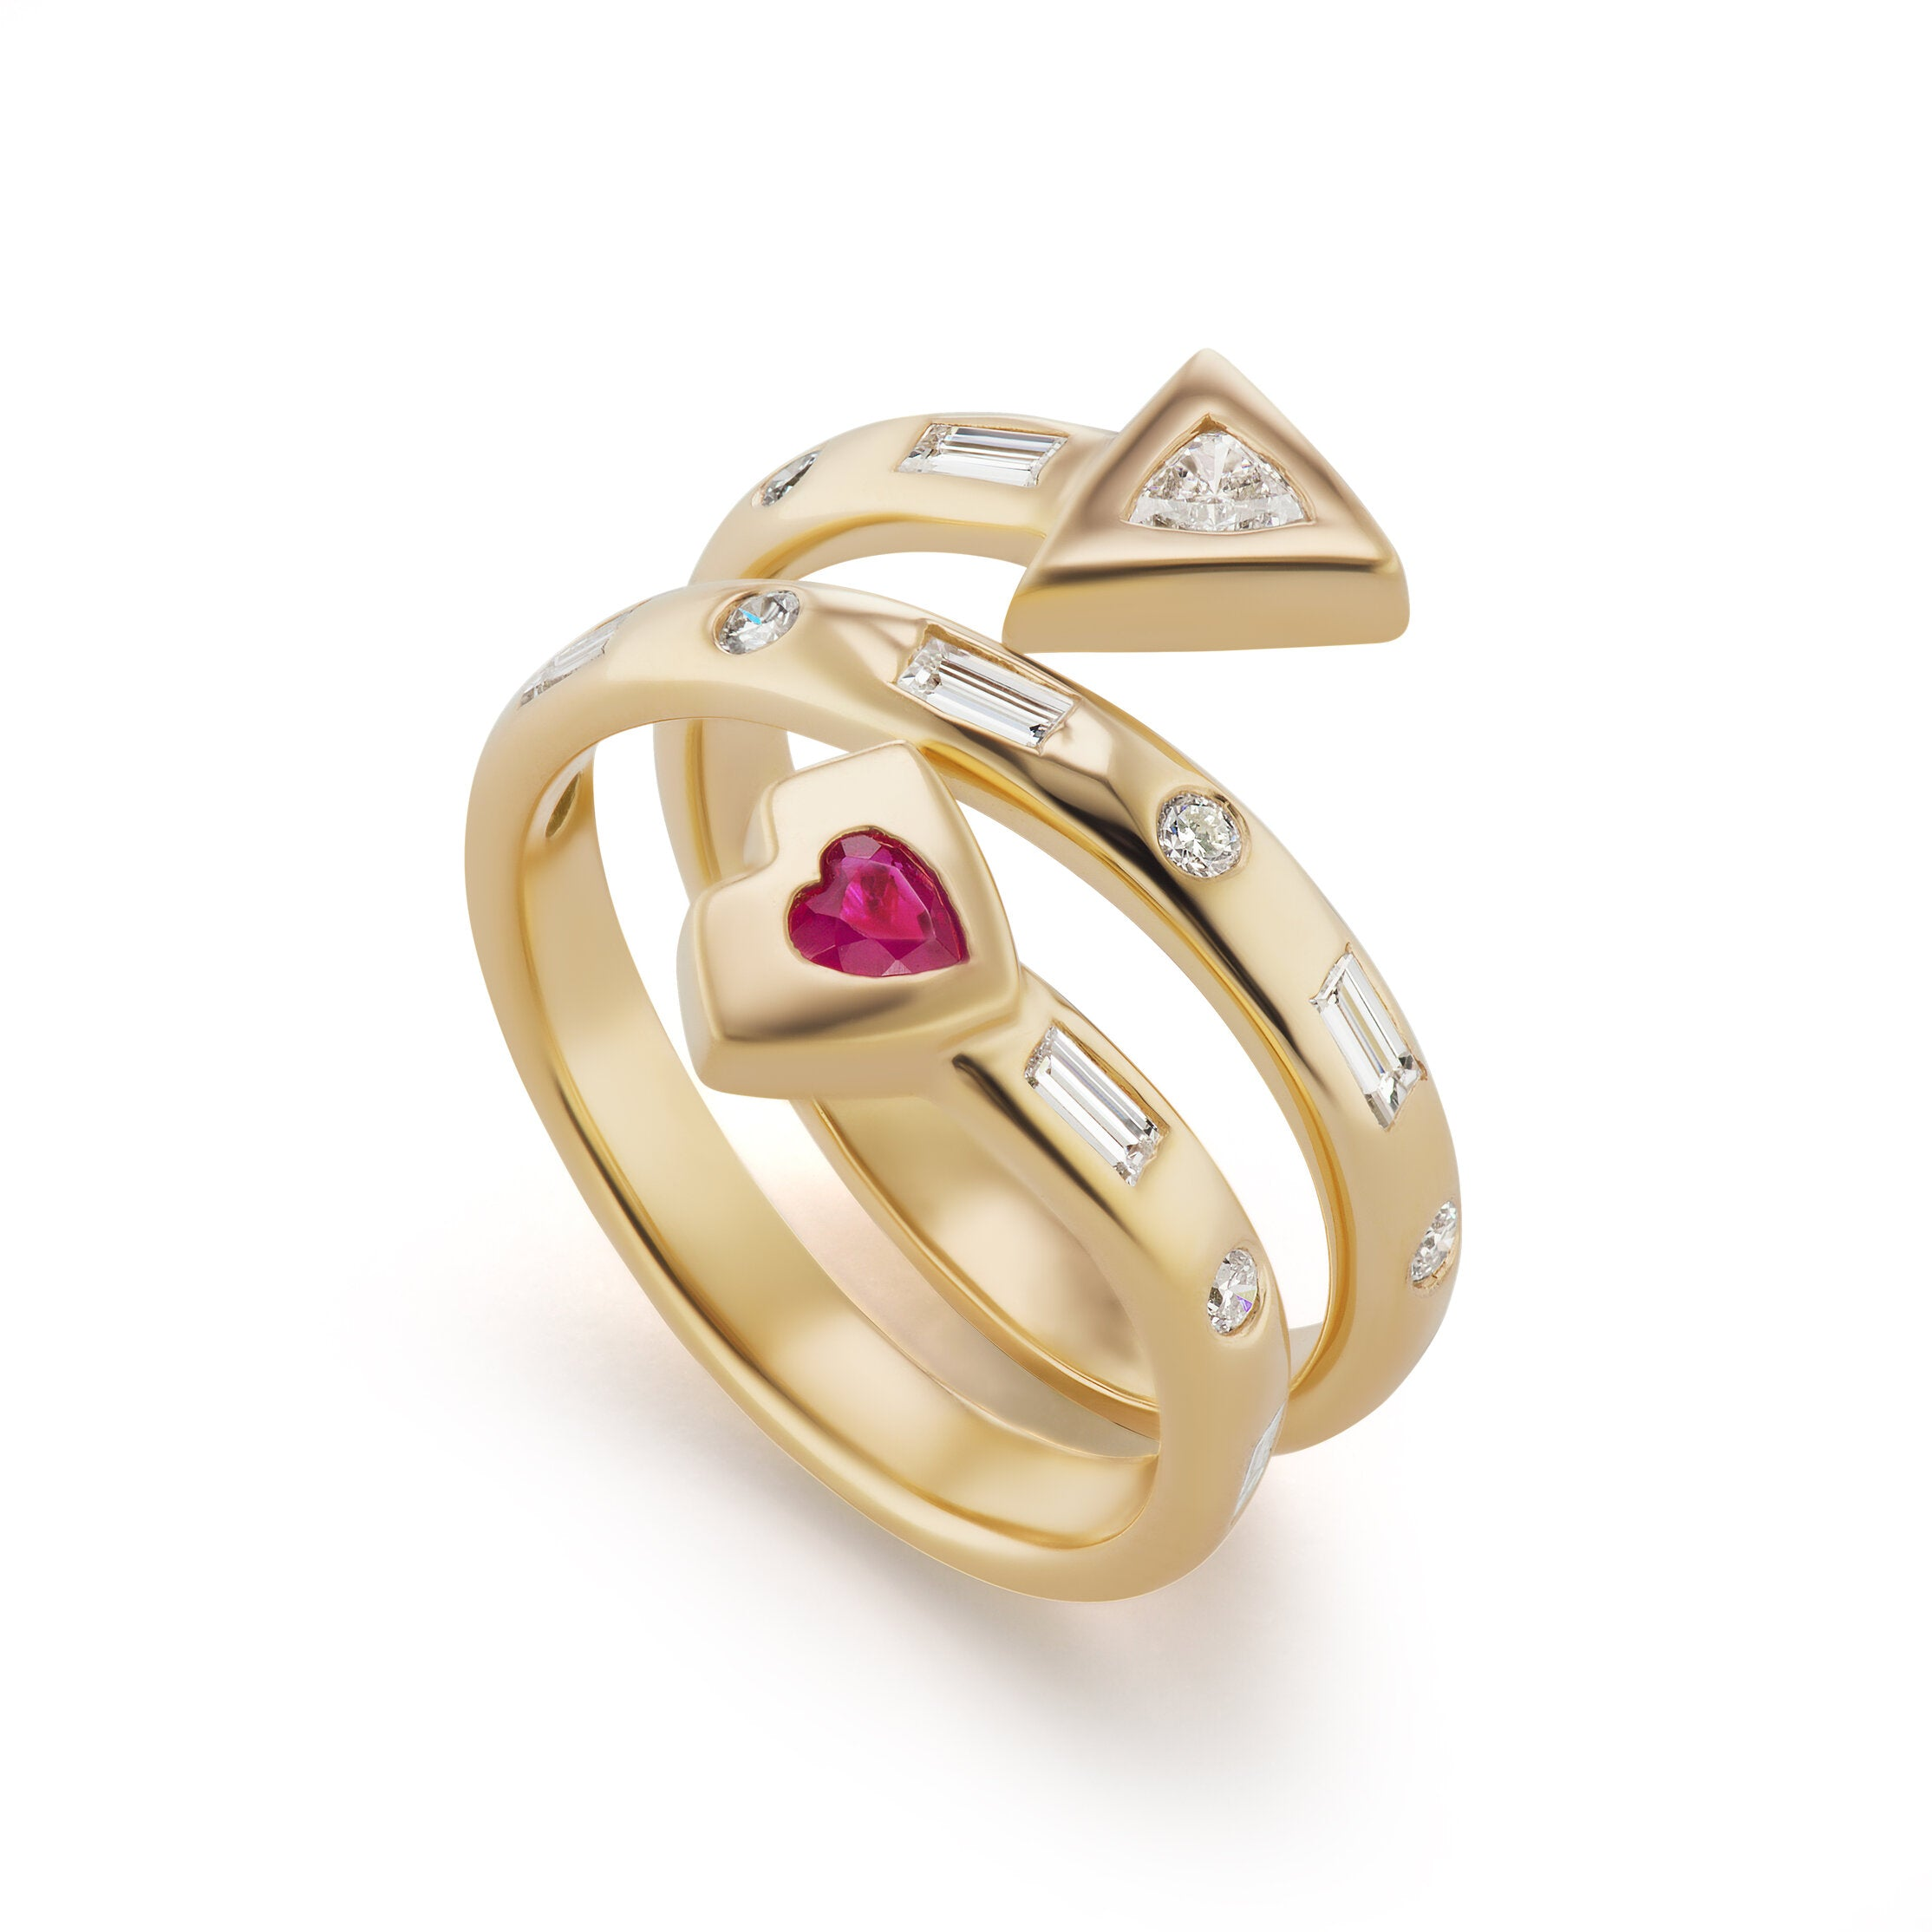 Artemis Coil Ring with Ruby Heart